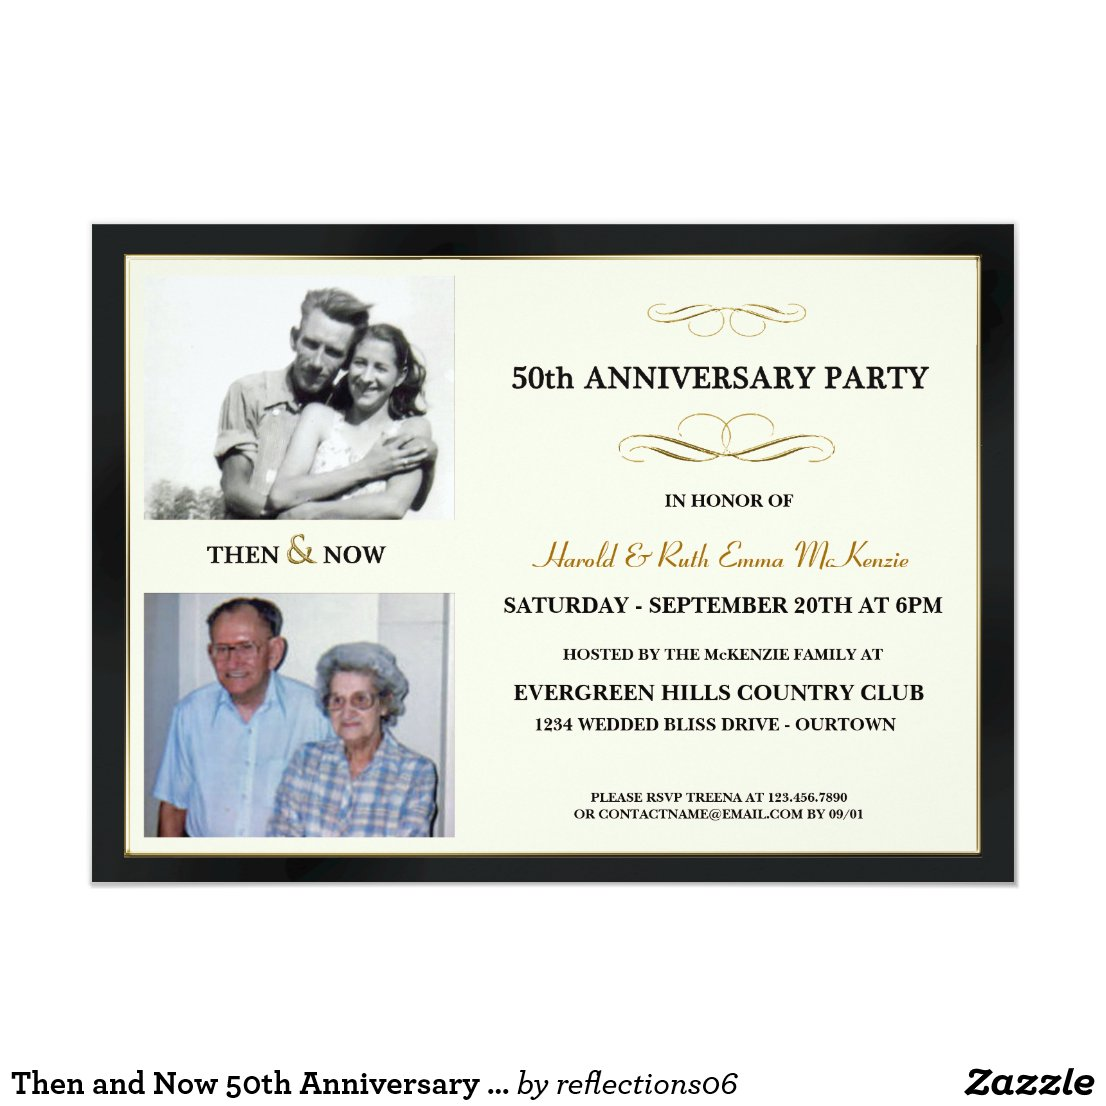 Then and Now 50th Anniversary Invitations